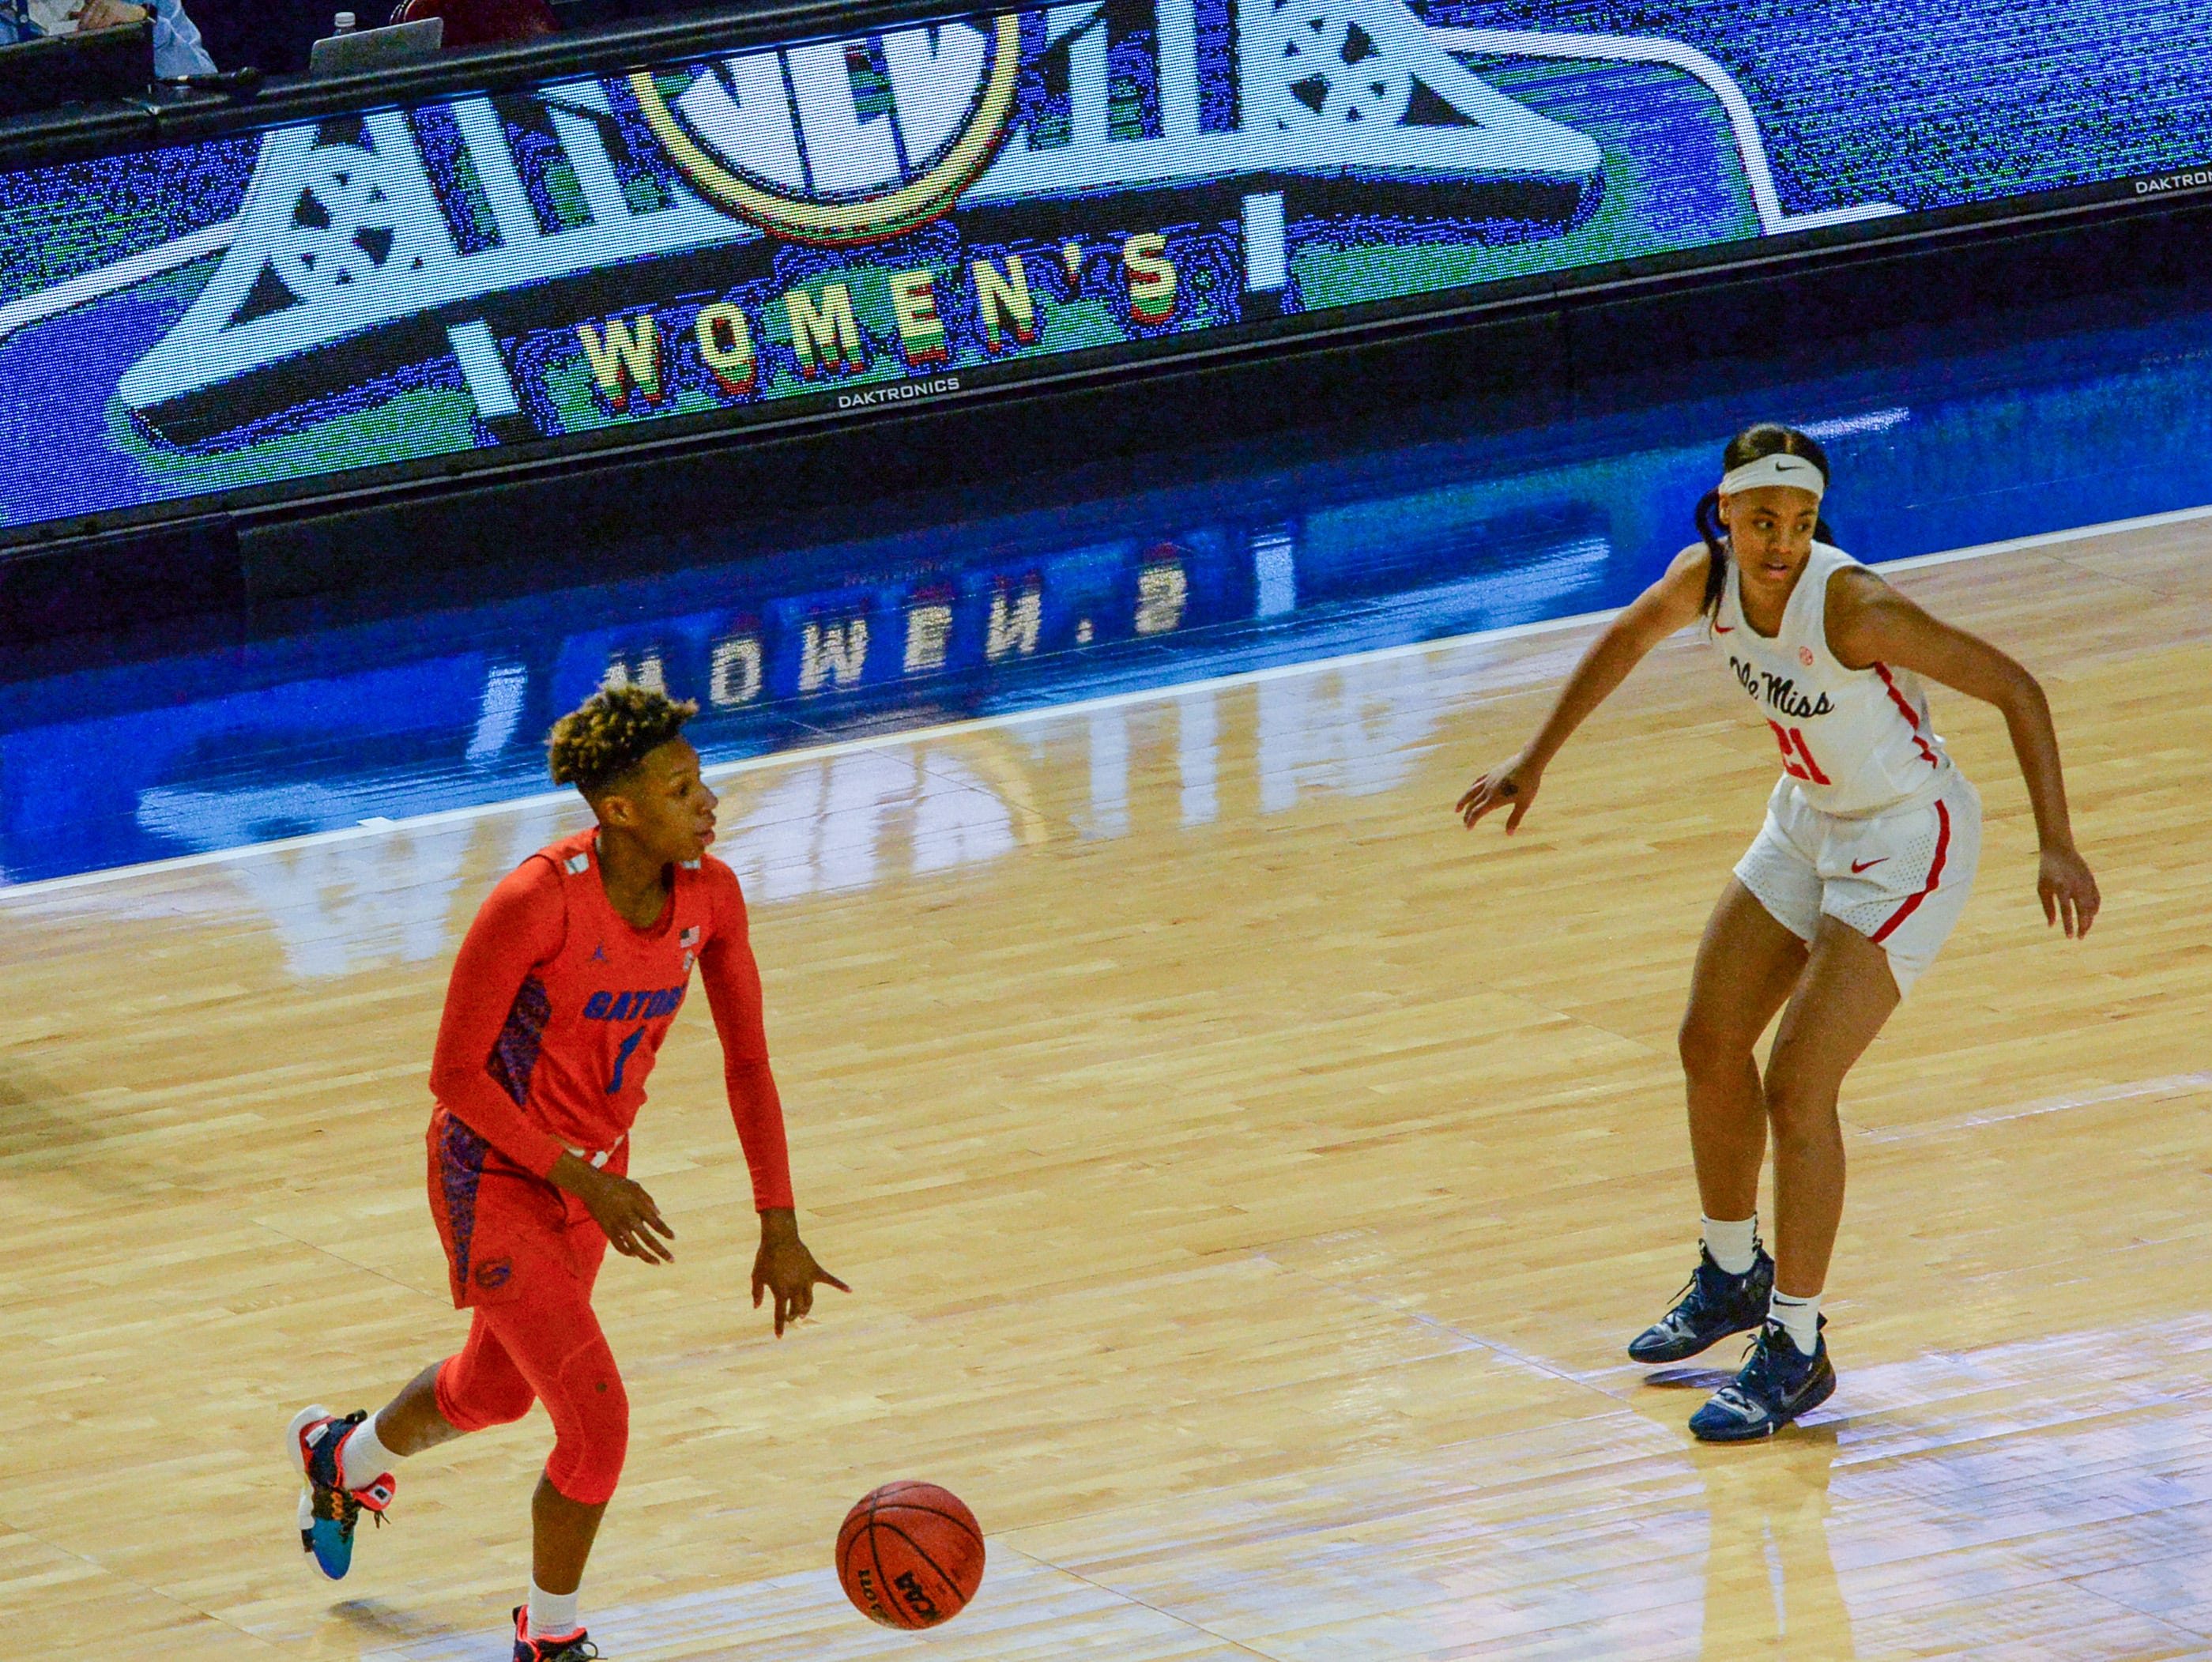 Florida guard Kiara Smith(1) dribbles near Ole Miss freshman Taylor Smith(21) during the first quarter of the Southeastern Conference Women's Tournament game at Bon Secour Wellness Arena in Greenville Wednesday, March 6, 2019.